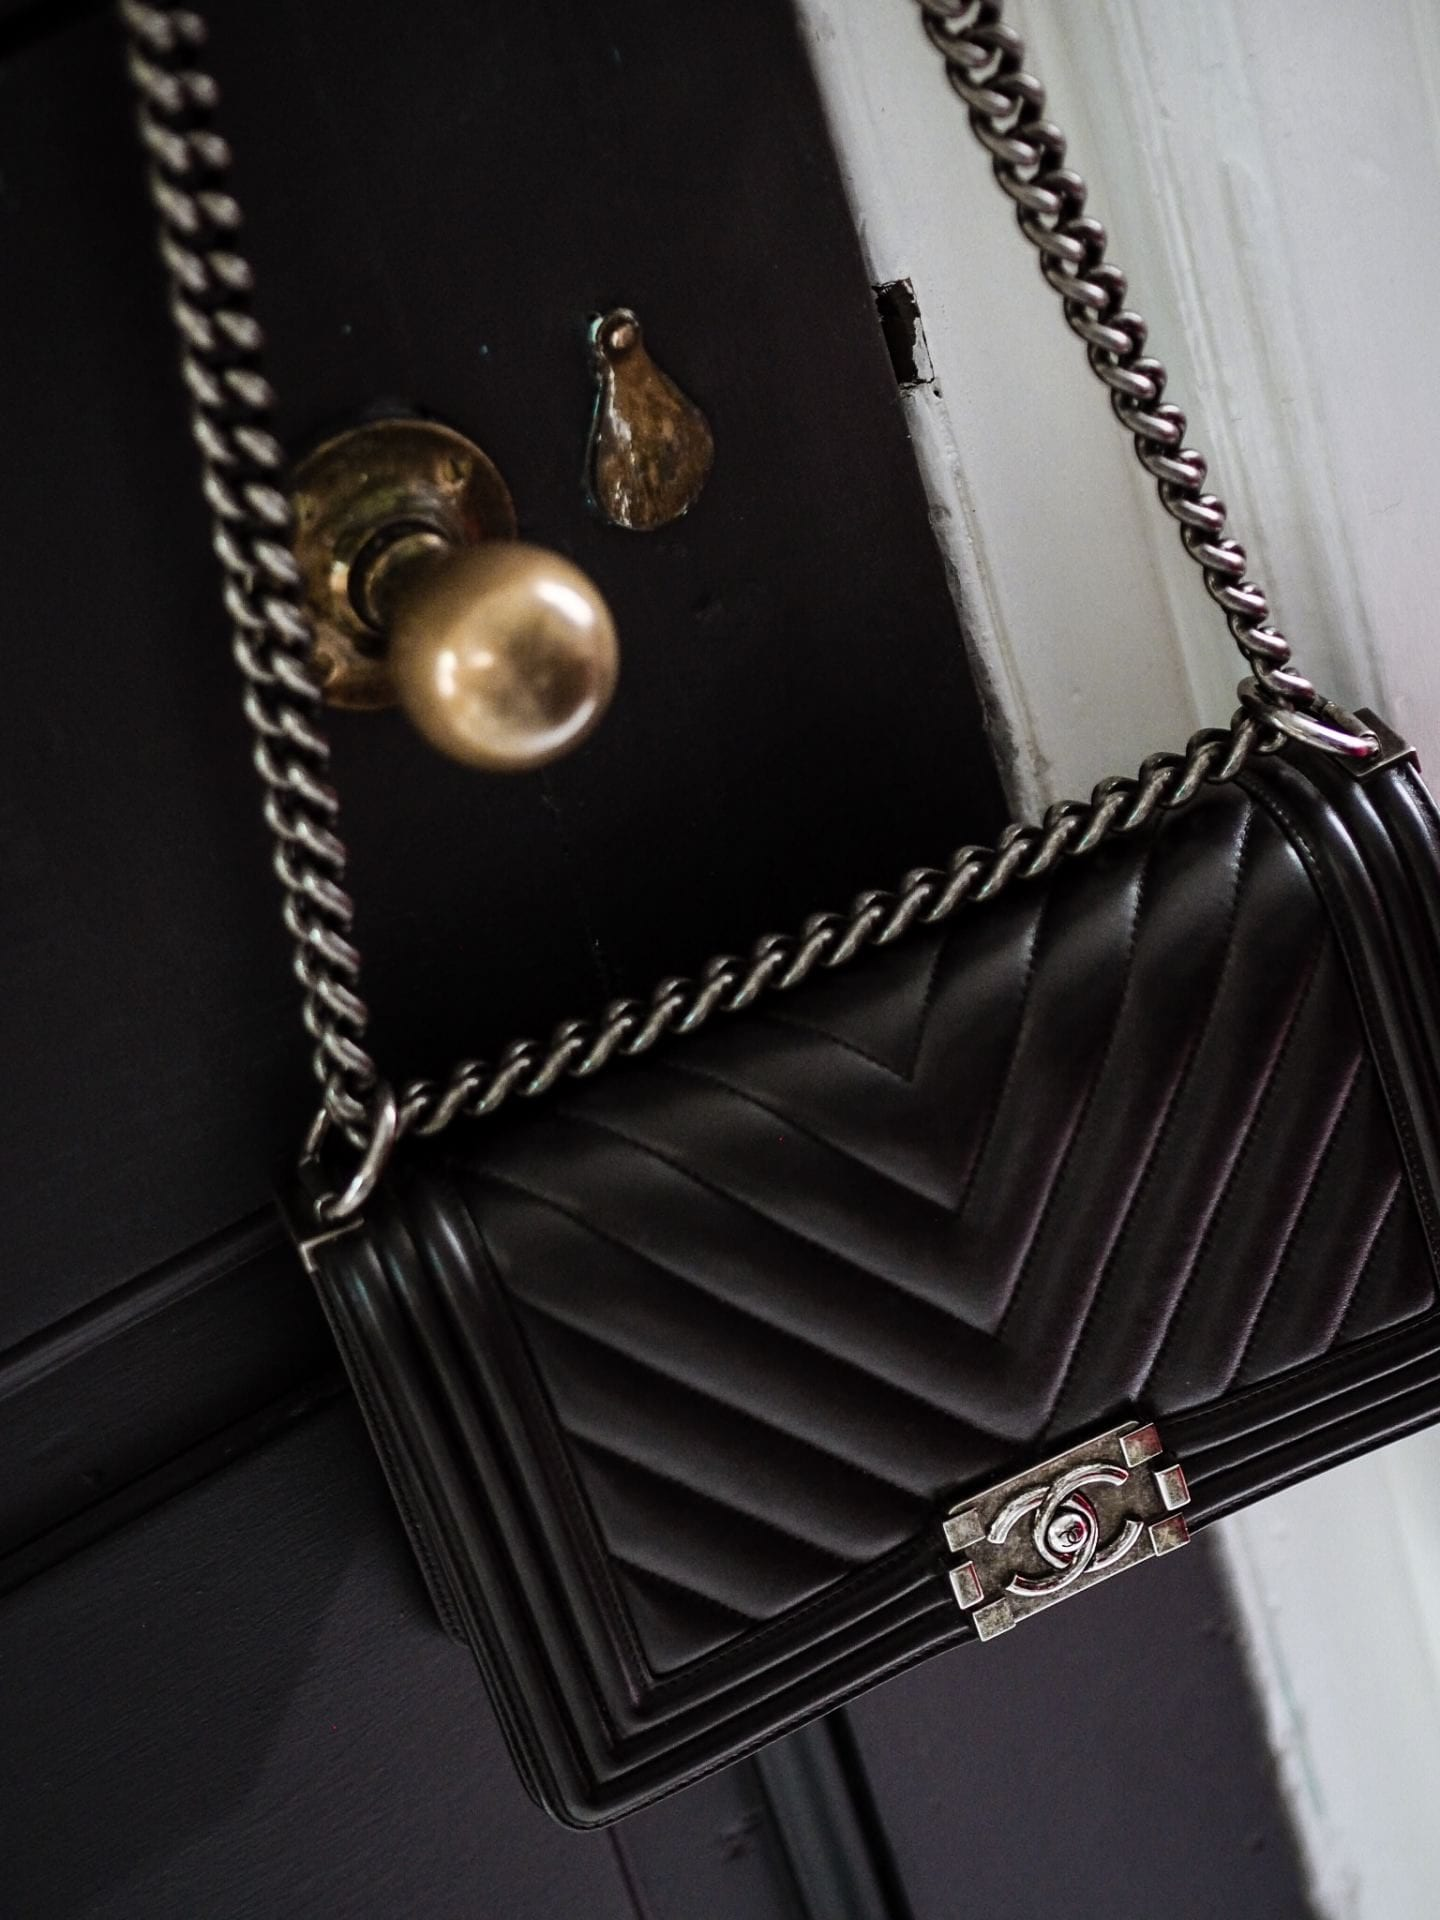 chanel boy bag review what you need to know price authenticity how to authenticate black chevron leather lambskin review designer bag